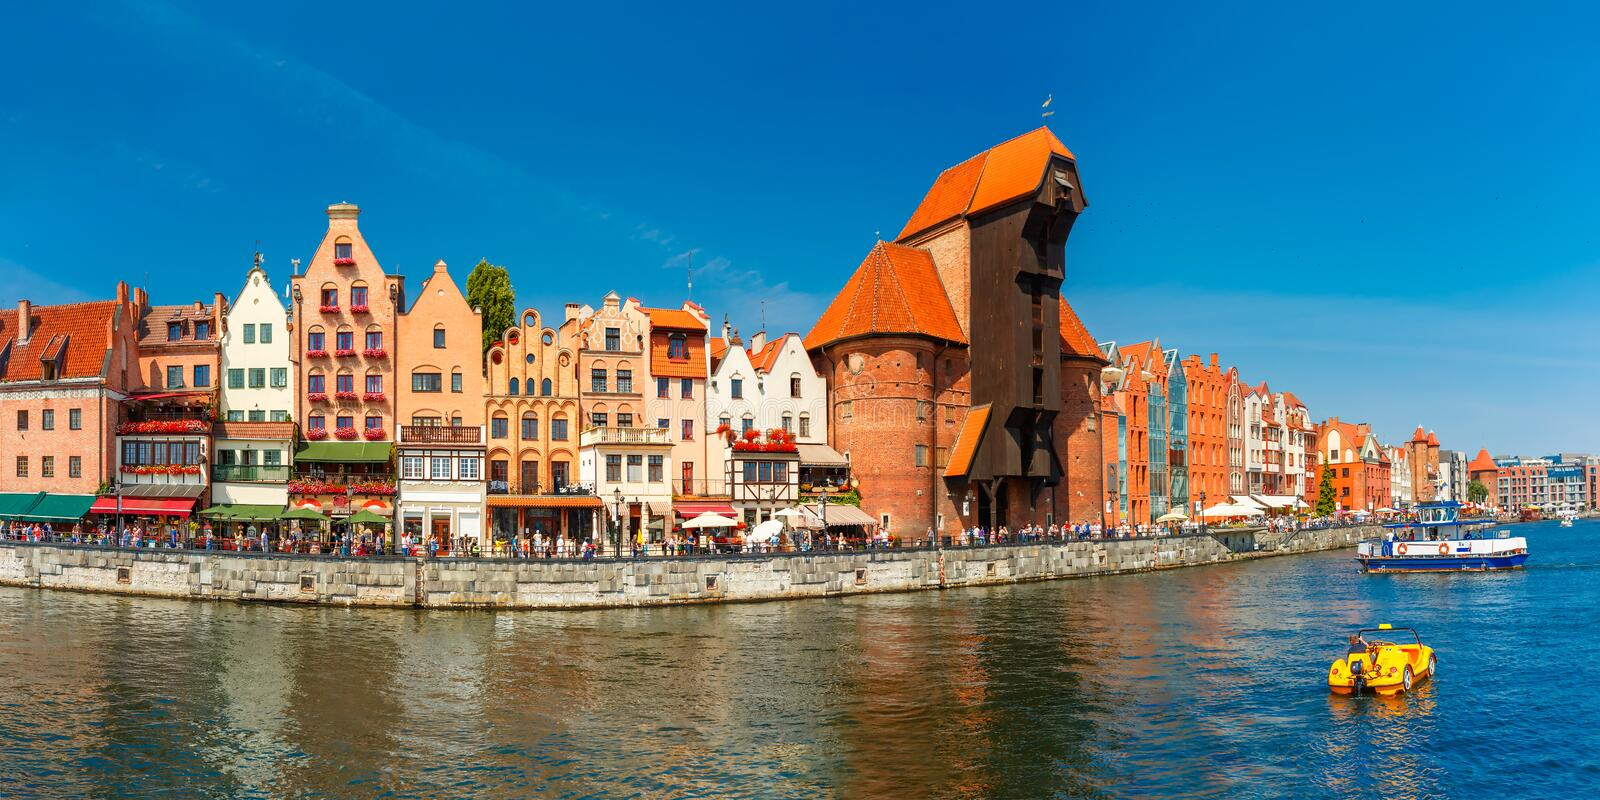 Panorama of Old Town and Motlawa in Gdansk, Poland stock images